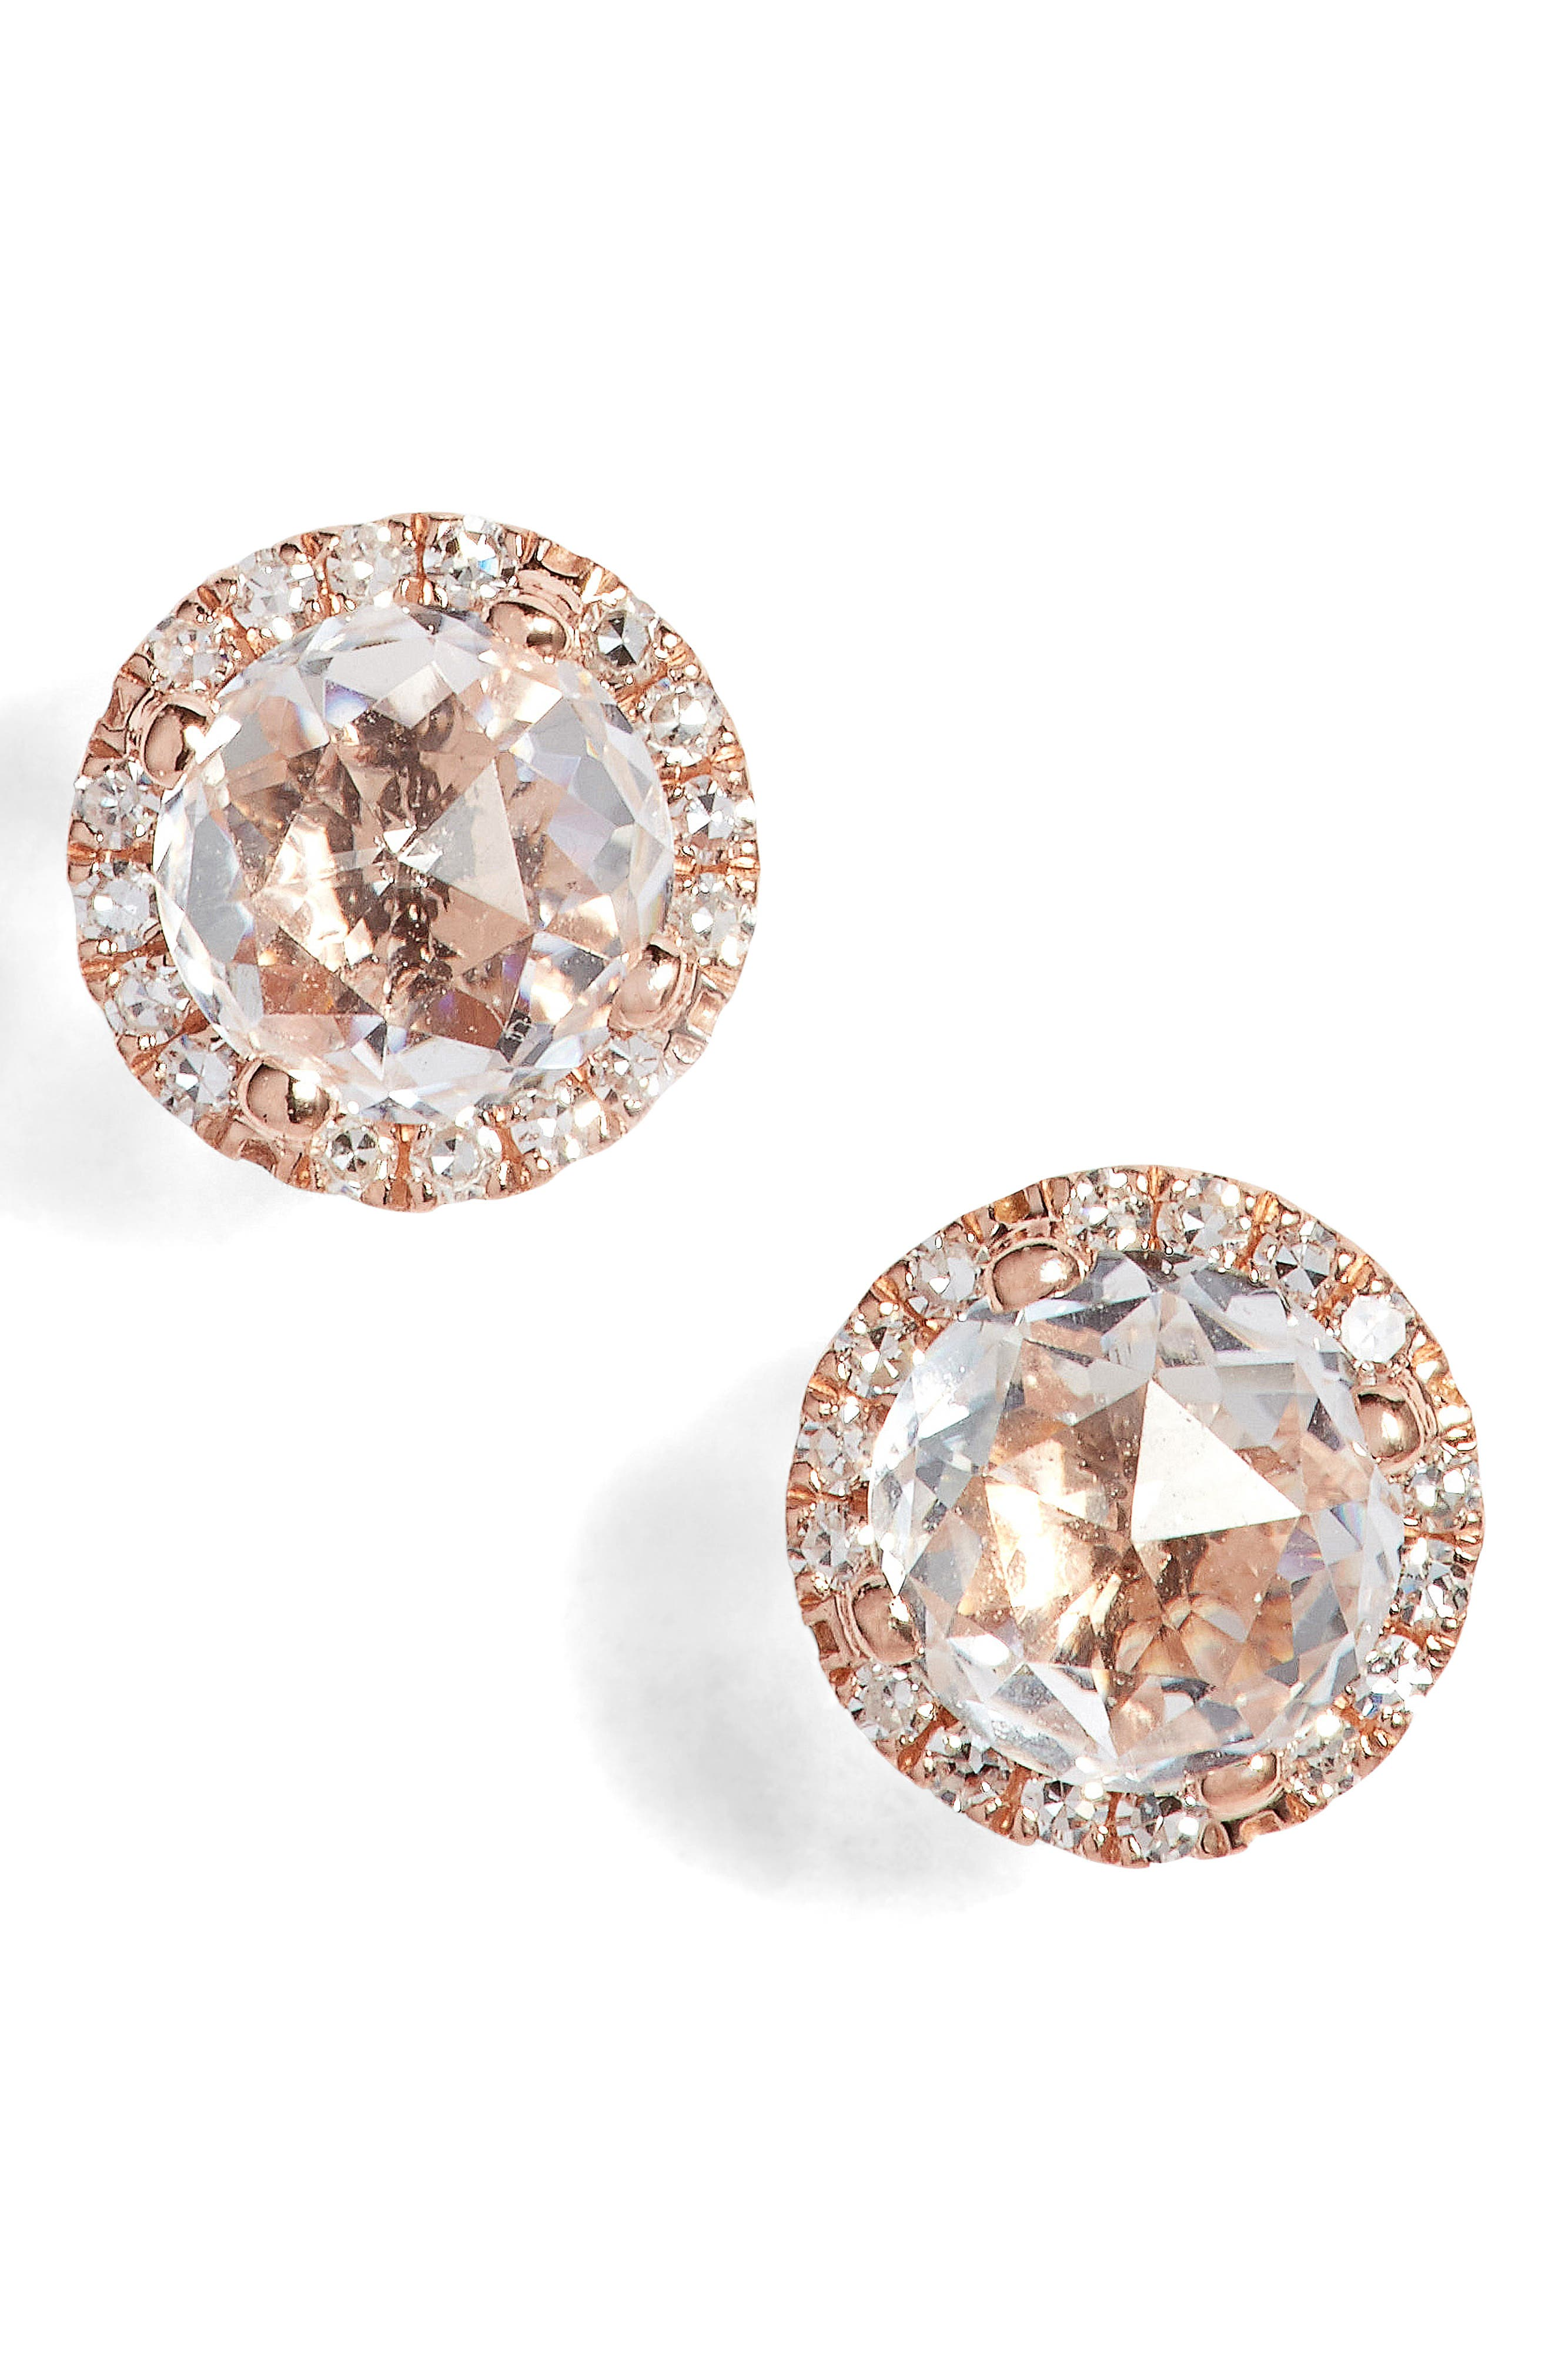 Diamond & Topaz Stud Earrings,                             Main thumbnail 1, color,                             ROSE GOLD